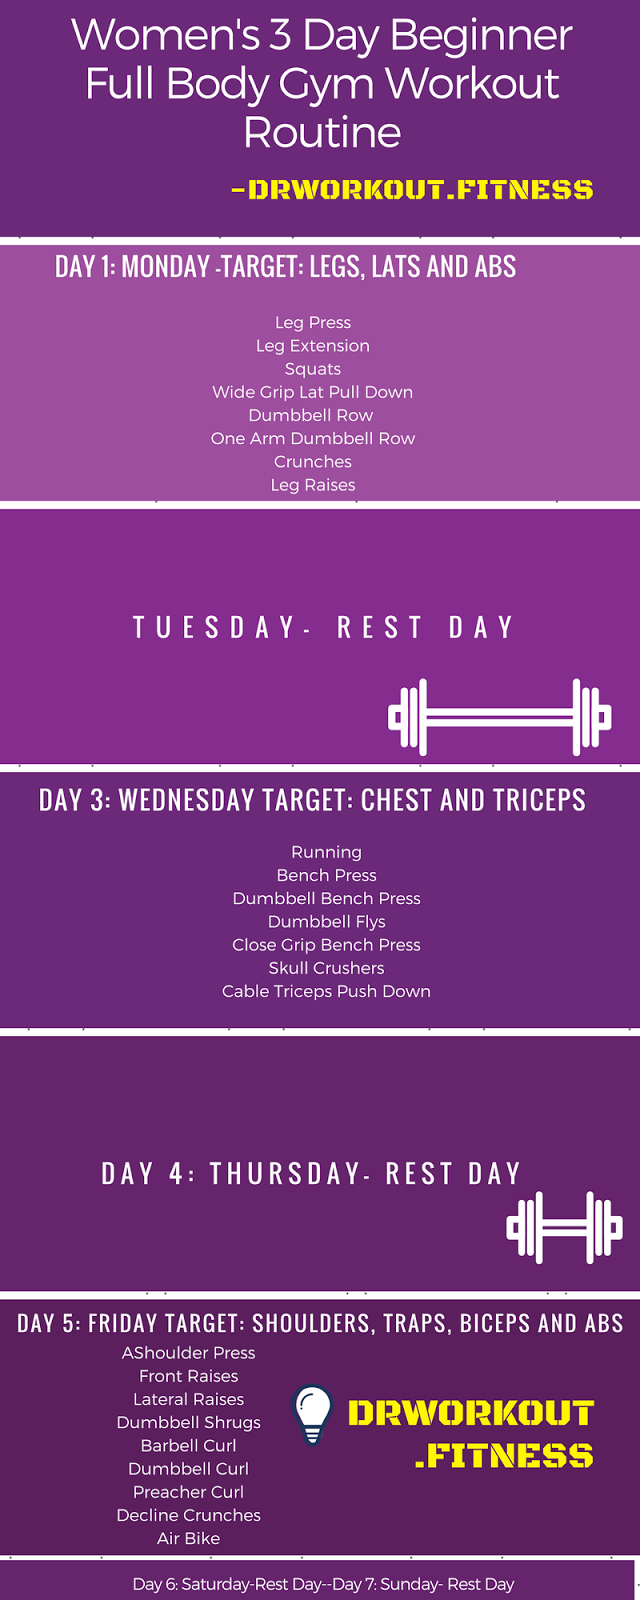 Womens 3 Day Beginner Full Body Gym Workout Plan